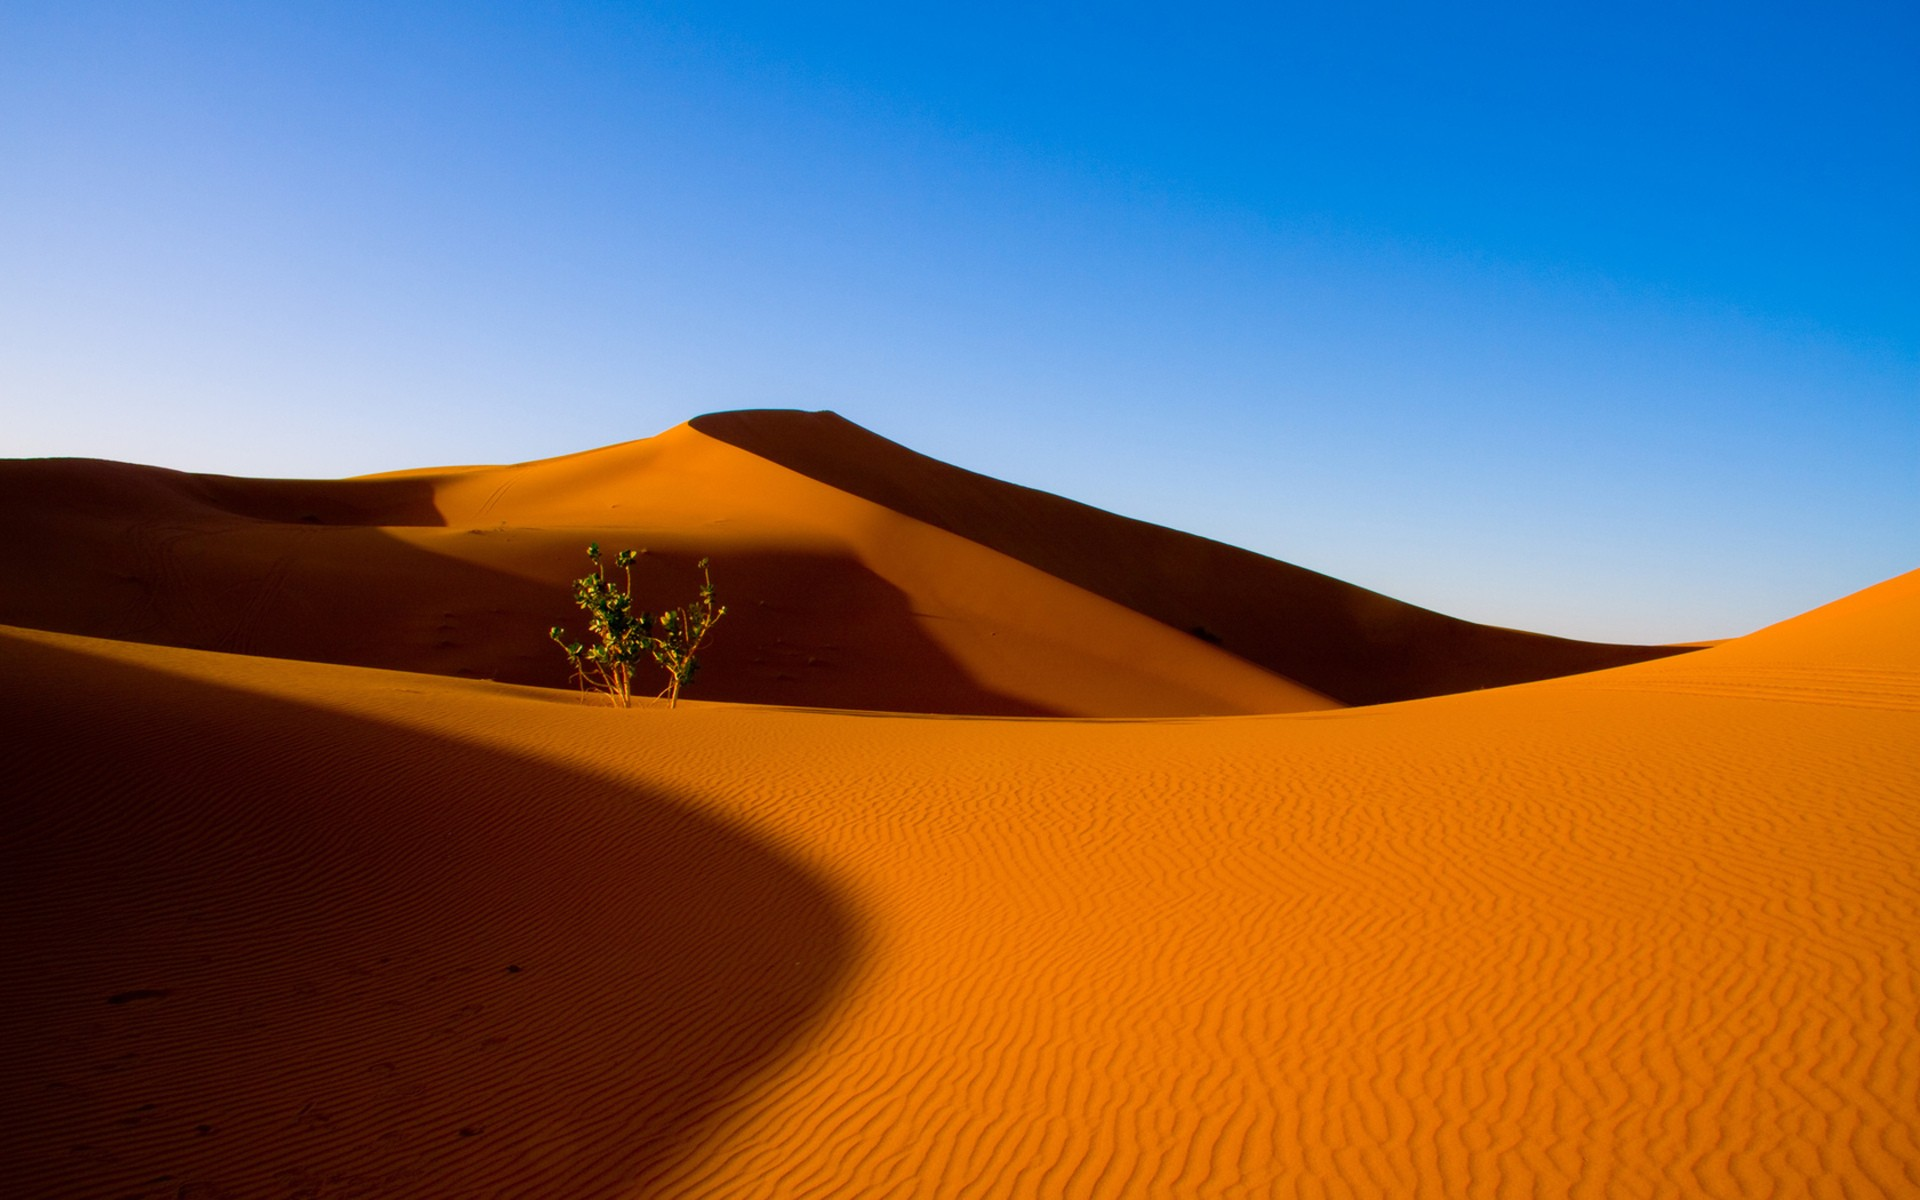 Best Wallpapers For Iphone X 4k Desert Wallpaper 183 ① Download Free Cool Full Hd Backgrounds